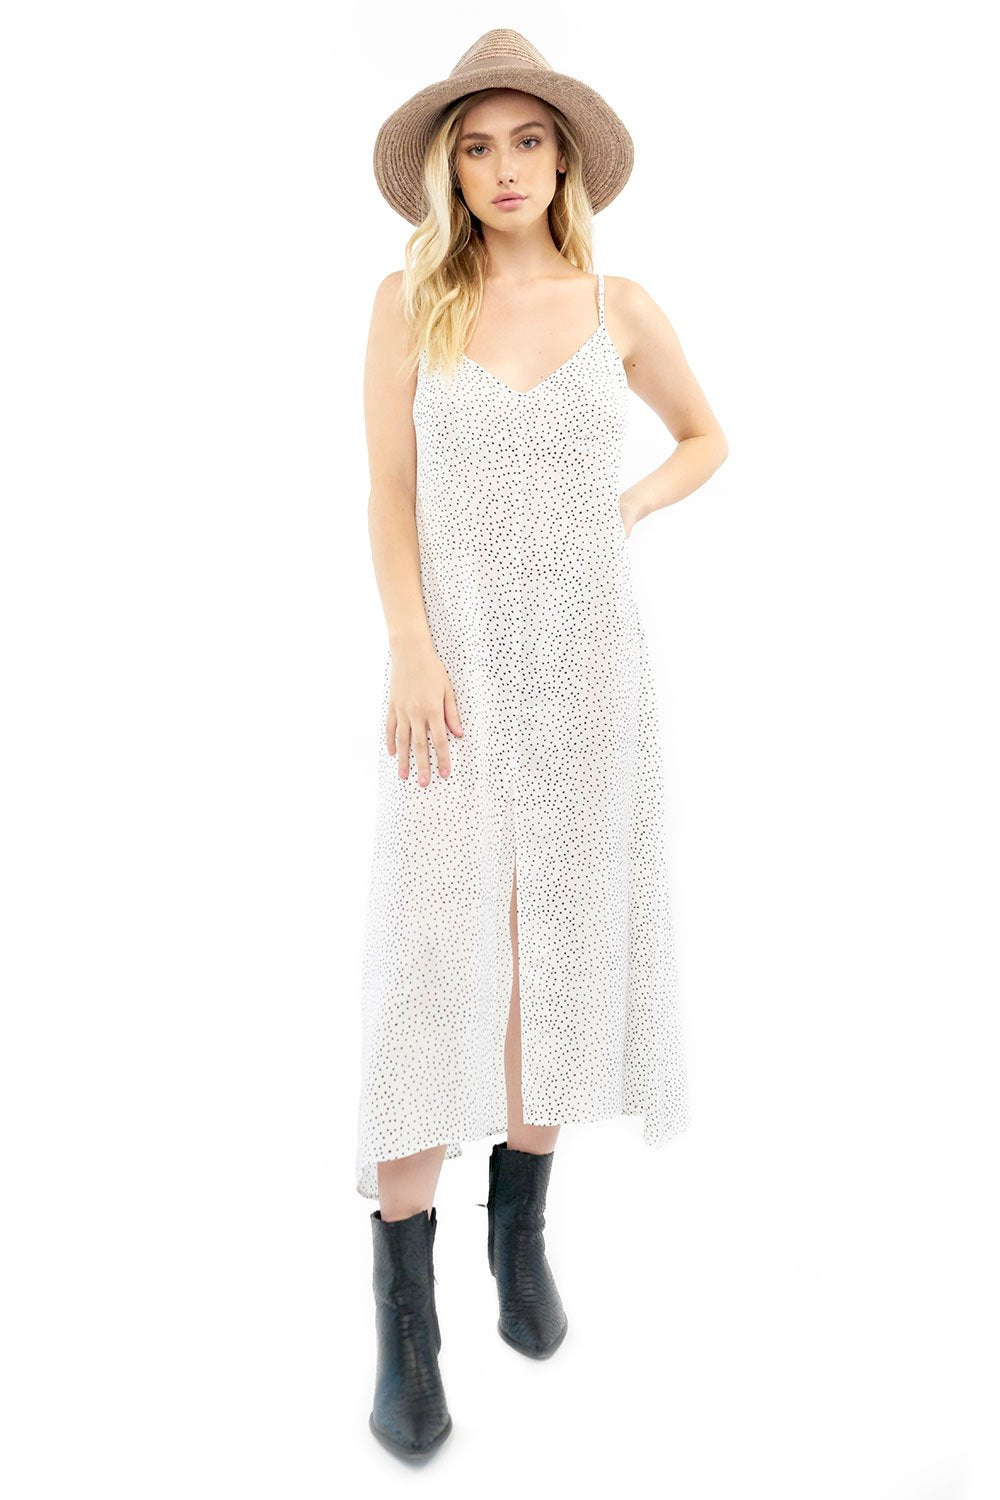 Saltwater Luxe - Sundown Midi Dress